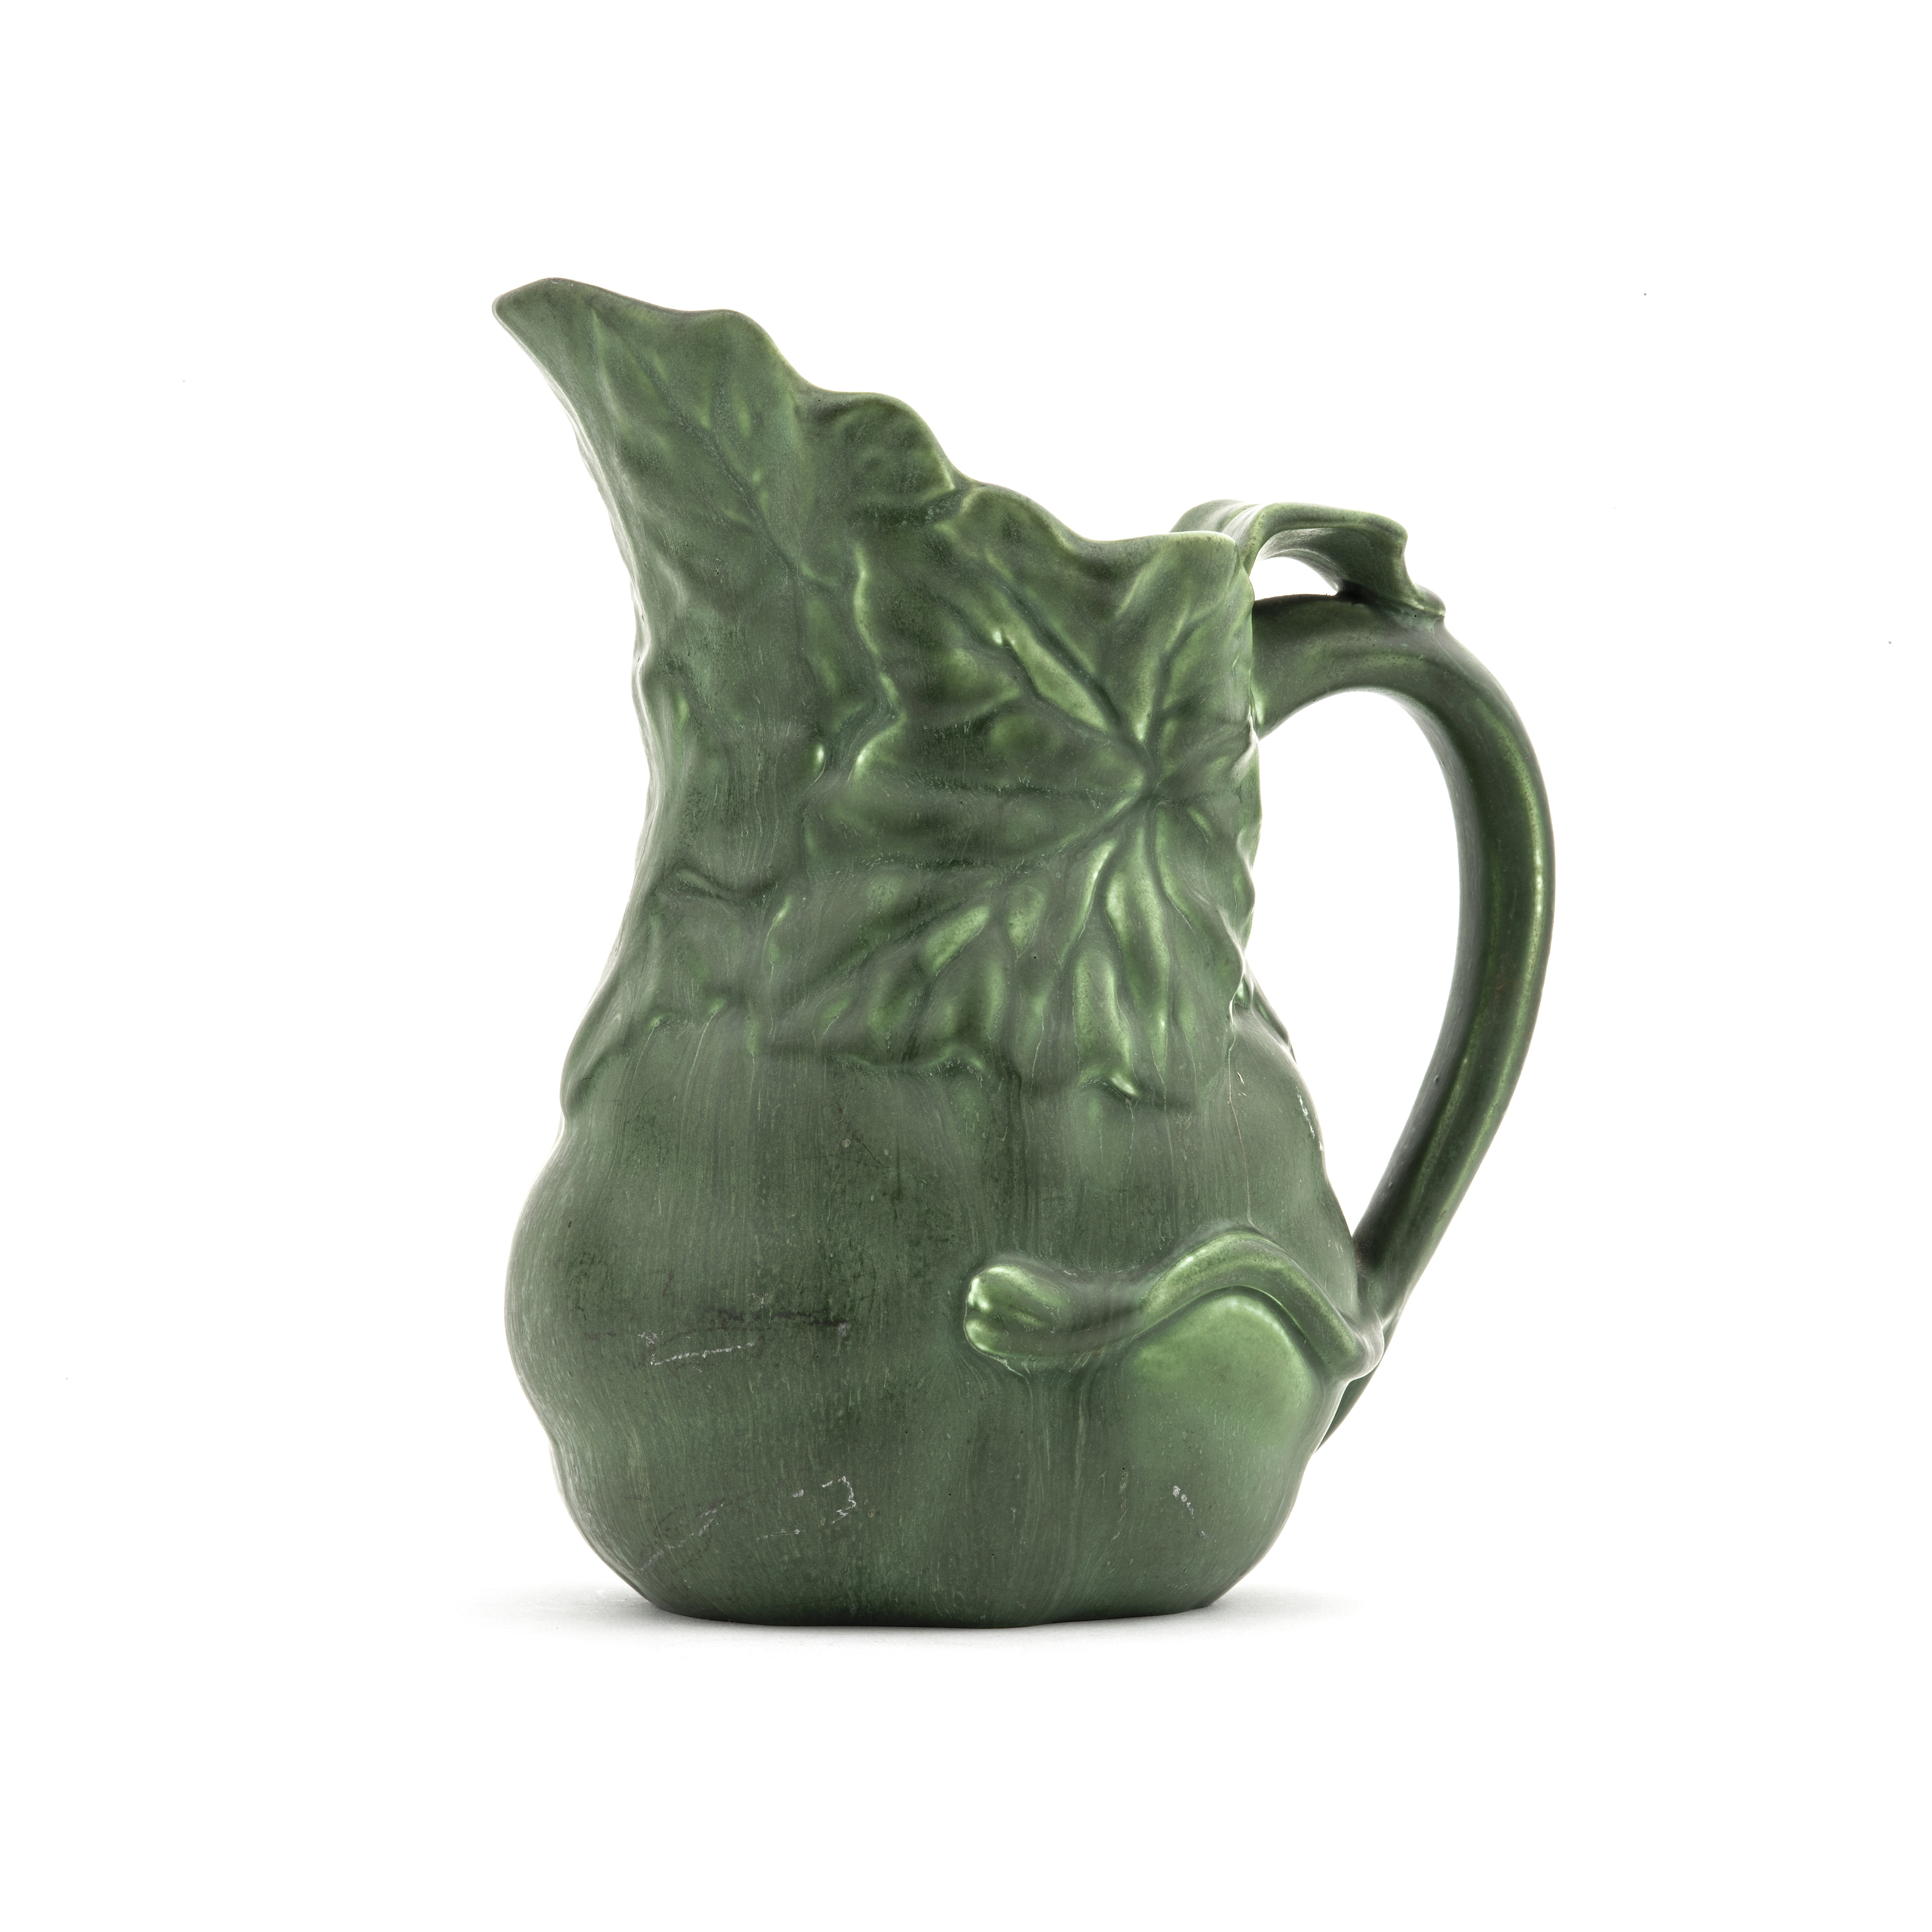 Pitcher Arts and Crafts Movement Signed Hampshire Pottery